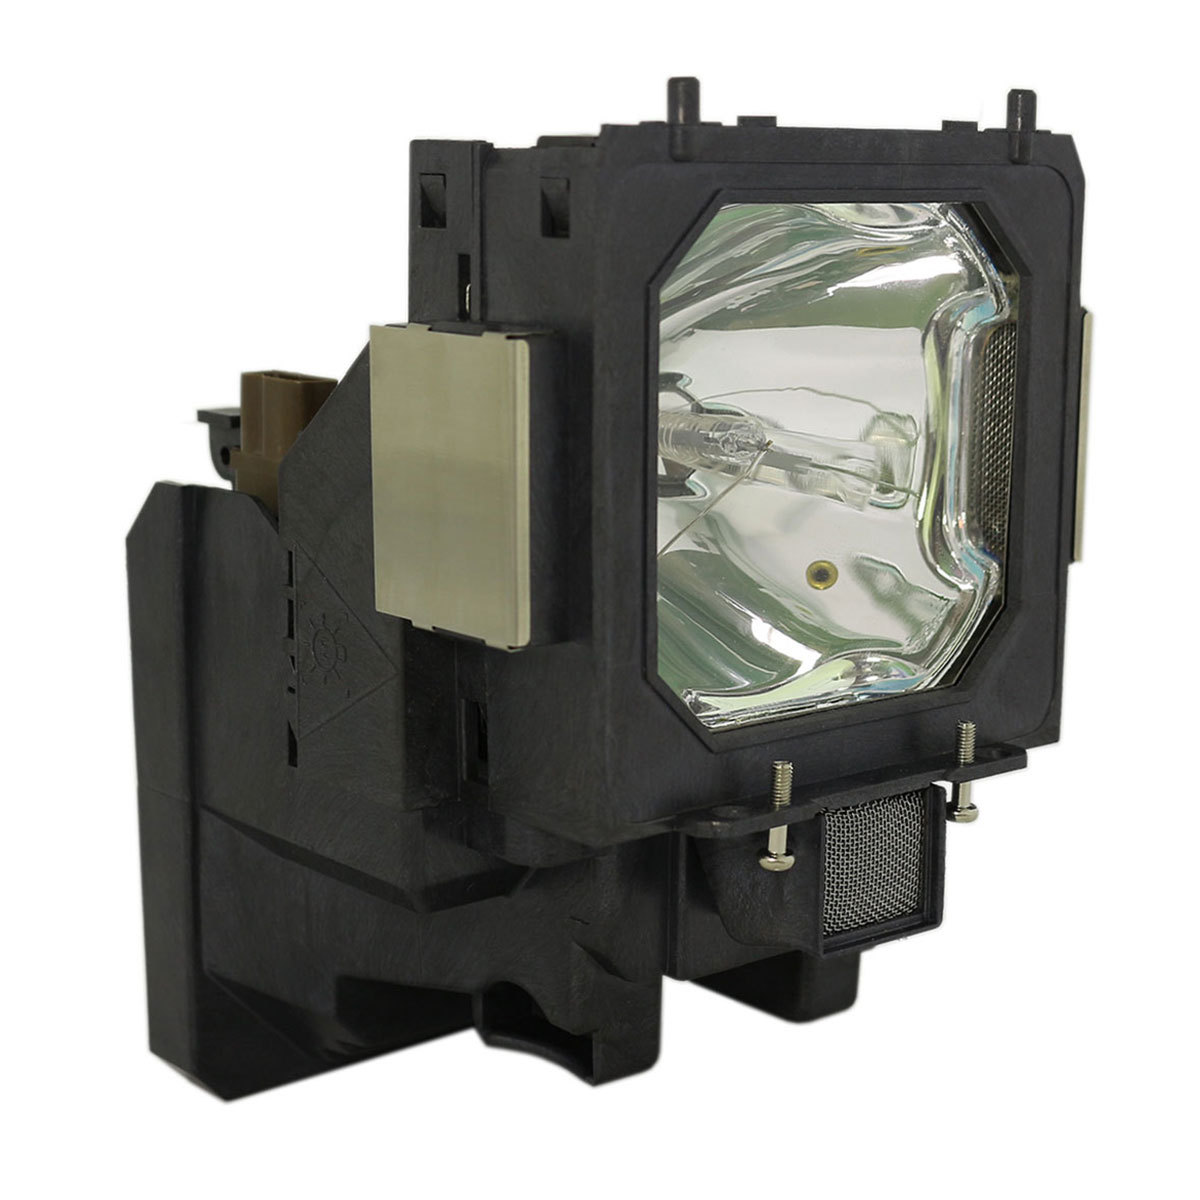 Primary image for Geha 60-272371 Compatible Projector Lamp Module